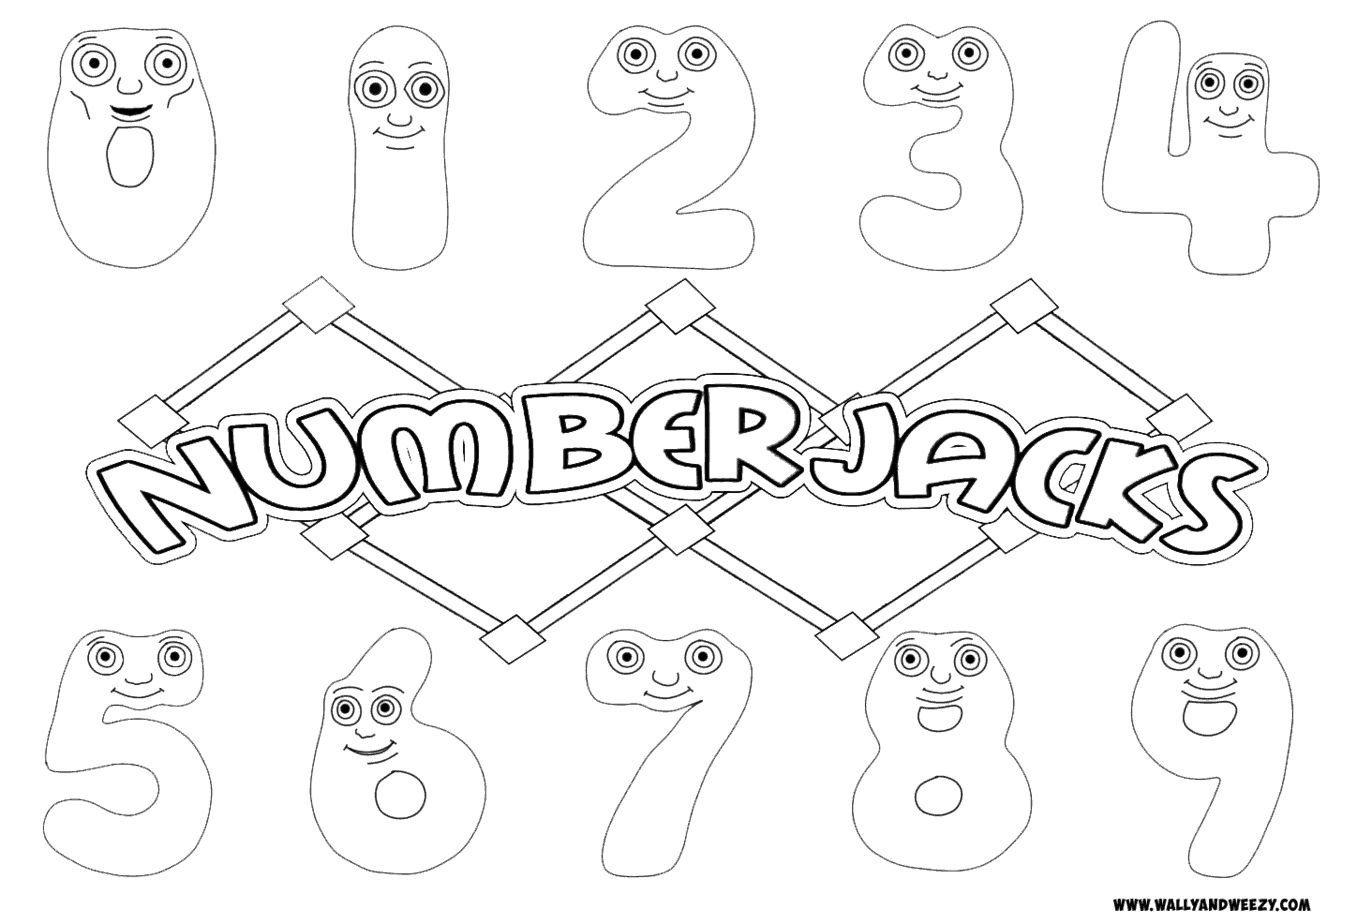 Numberjacks Drawing/Coloring Video and Downloadable